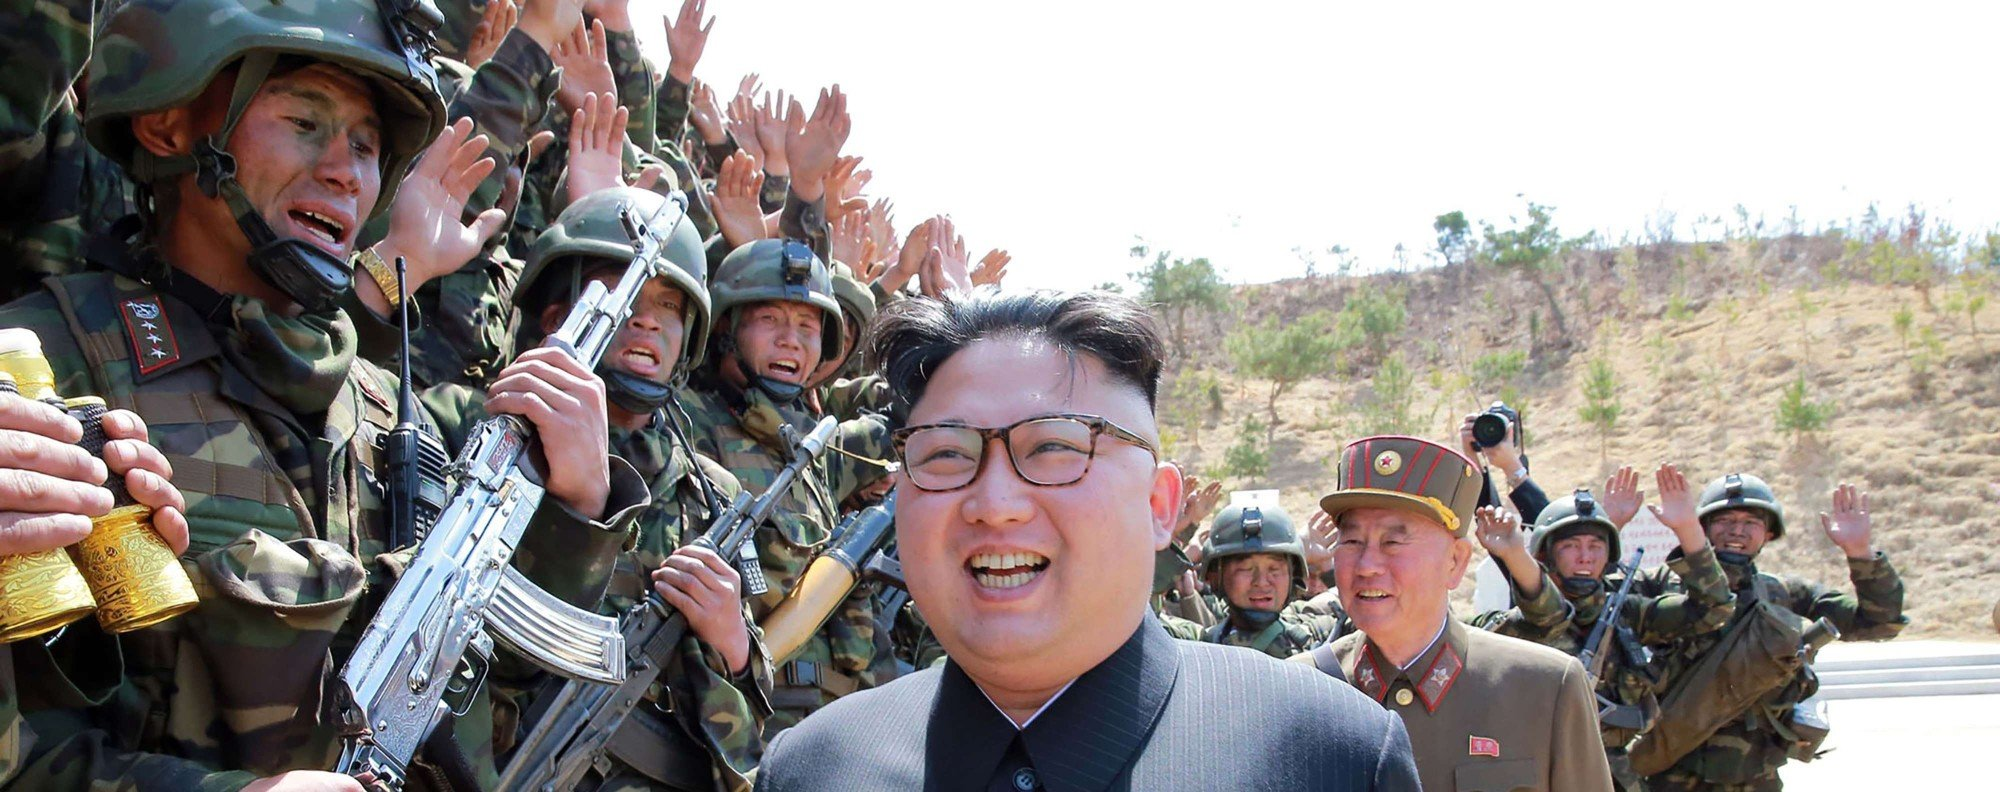 North Korean leader Kim Jong-un inspecting his forces at an undisclosed location. Photo: AFP